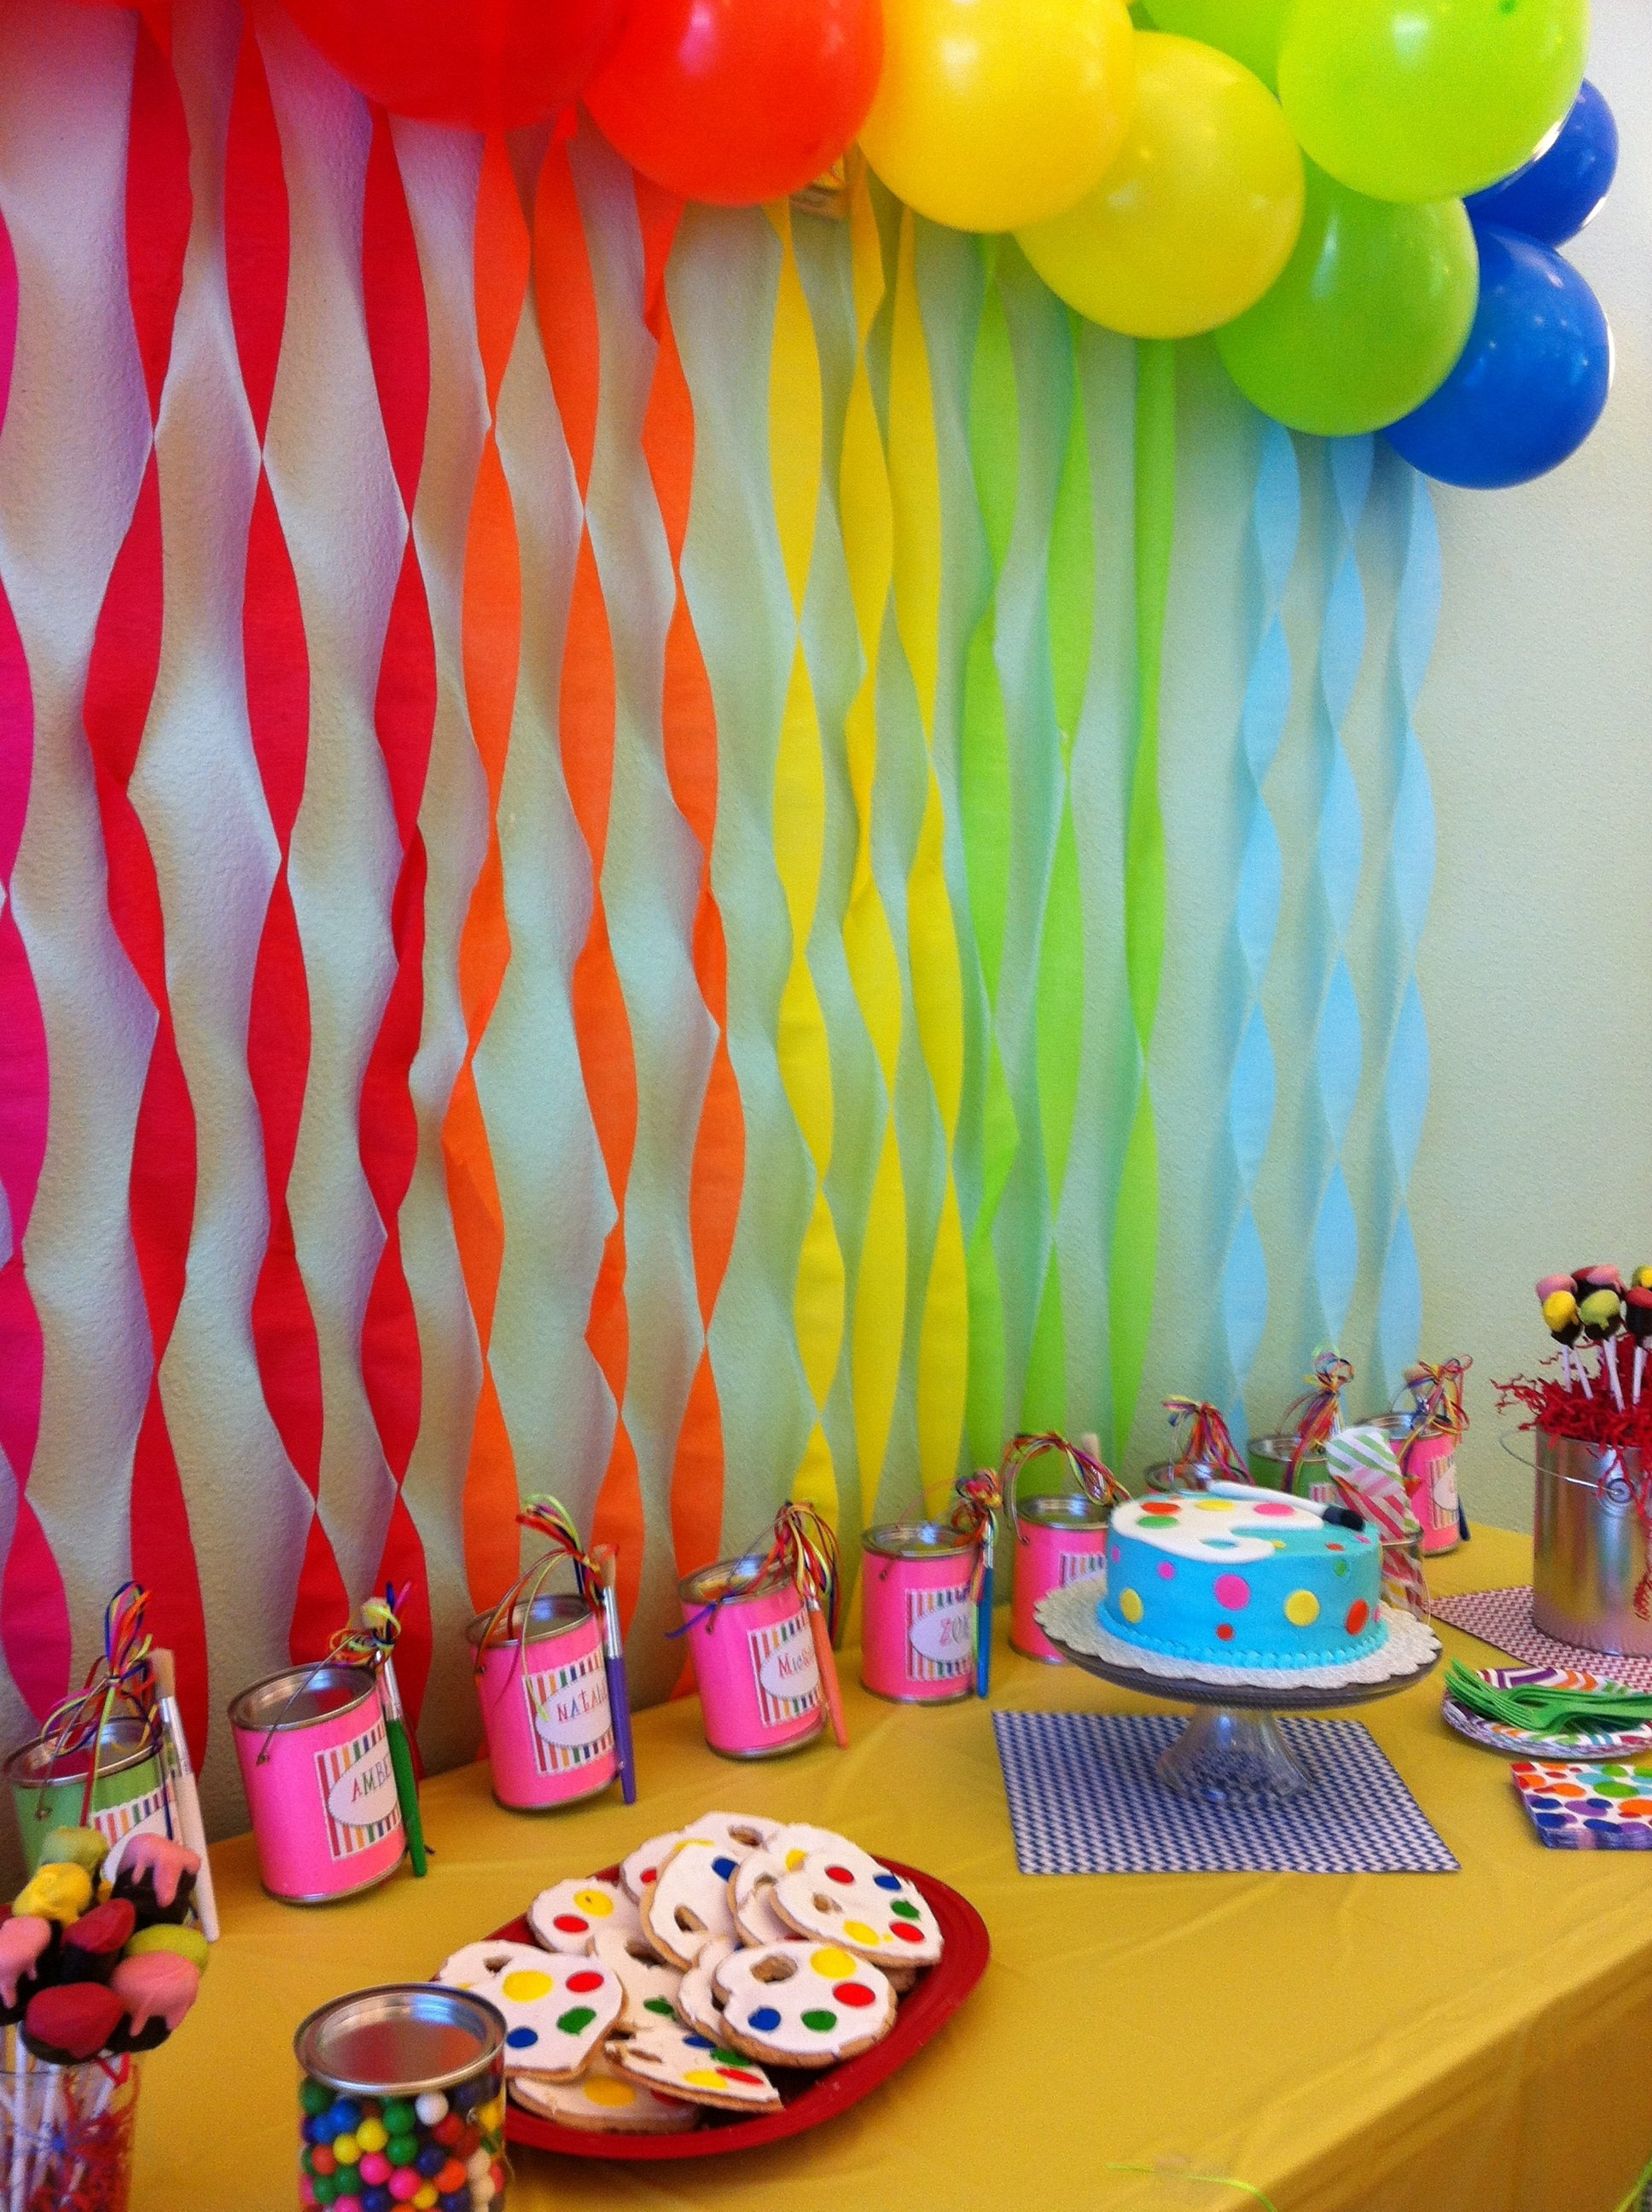 10 Stunning 6 Yr Old Birthday Party Ideas most birthday party ideas for 7 year old boy at home 8 girl art 3 2021